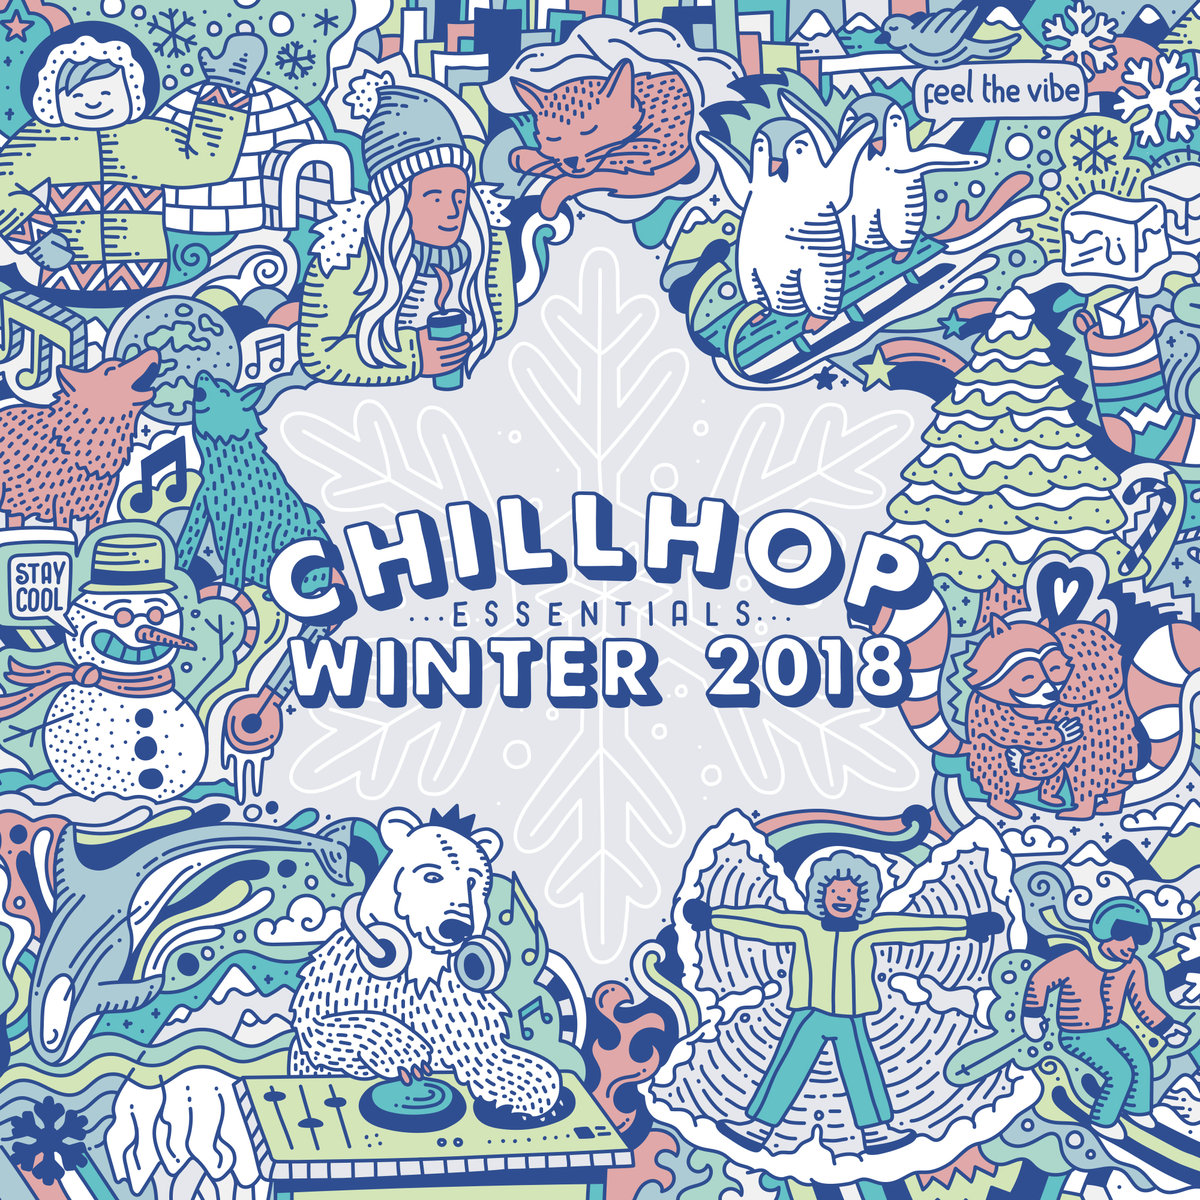 Chillhop Essentials - Winter 2018 | Full Album Stream & Vinyl Tipp